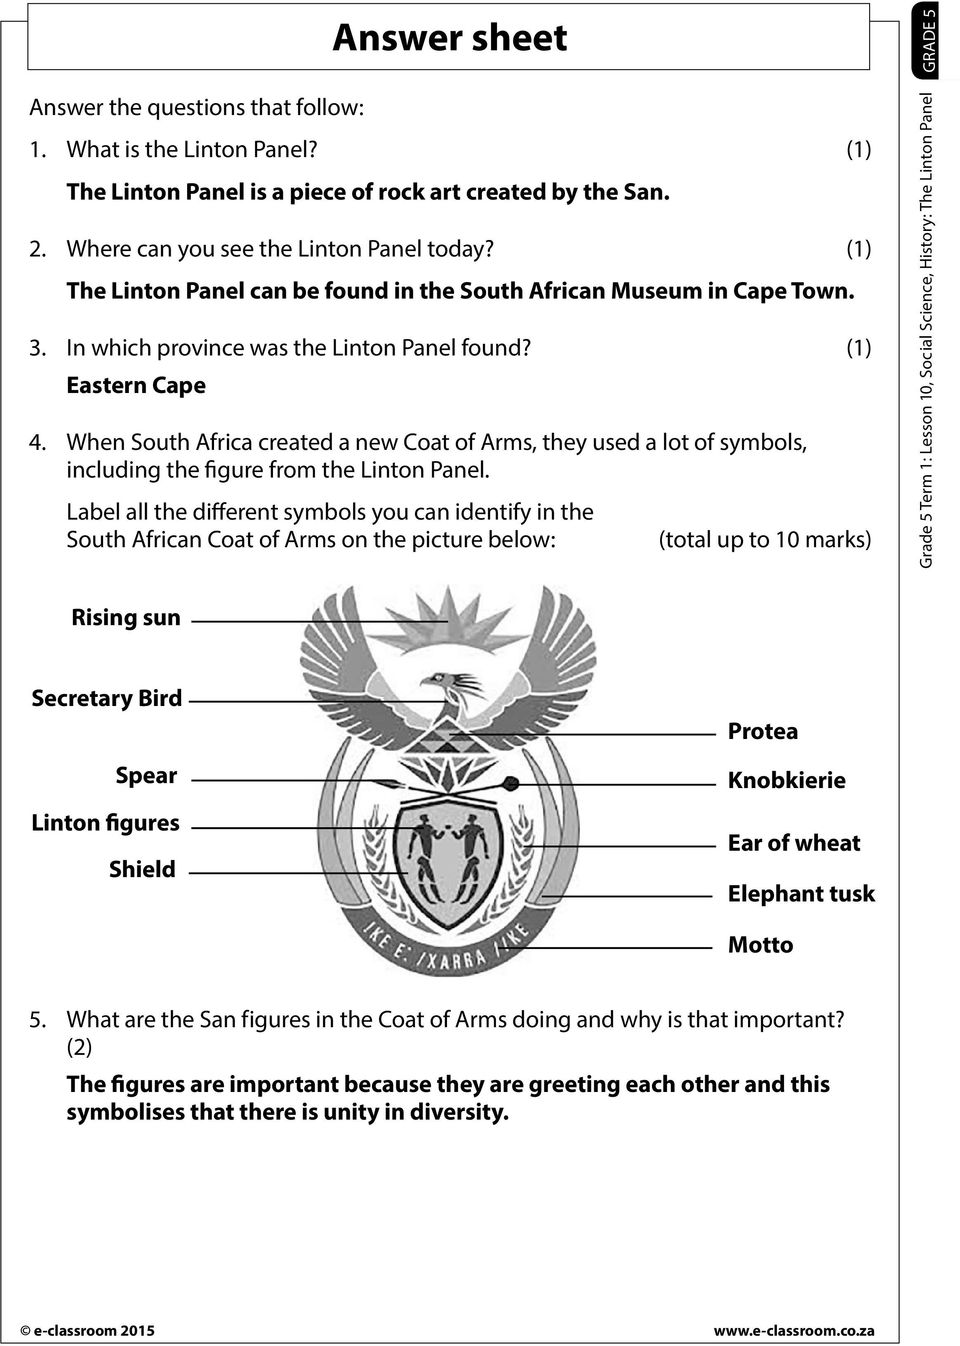 When South Africa created a new Coat of Arms, they used a lot of symbols